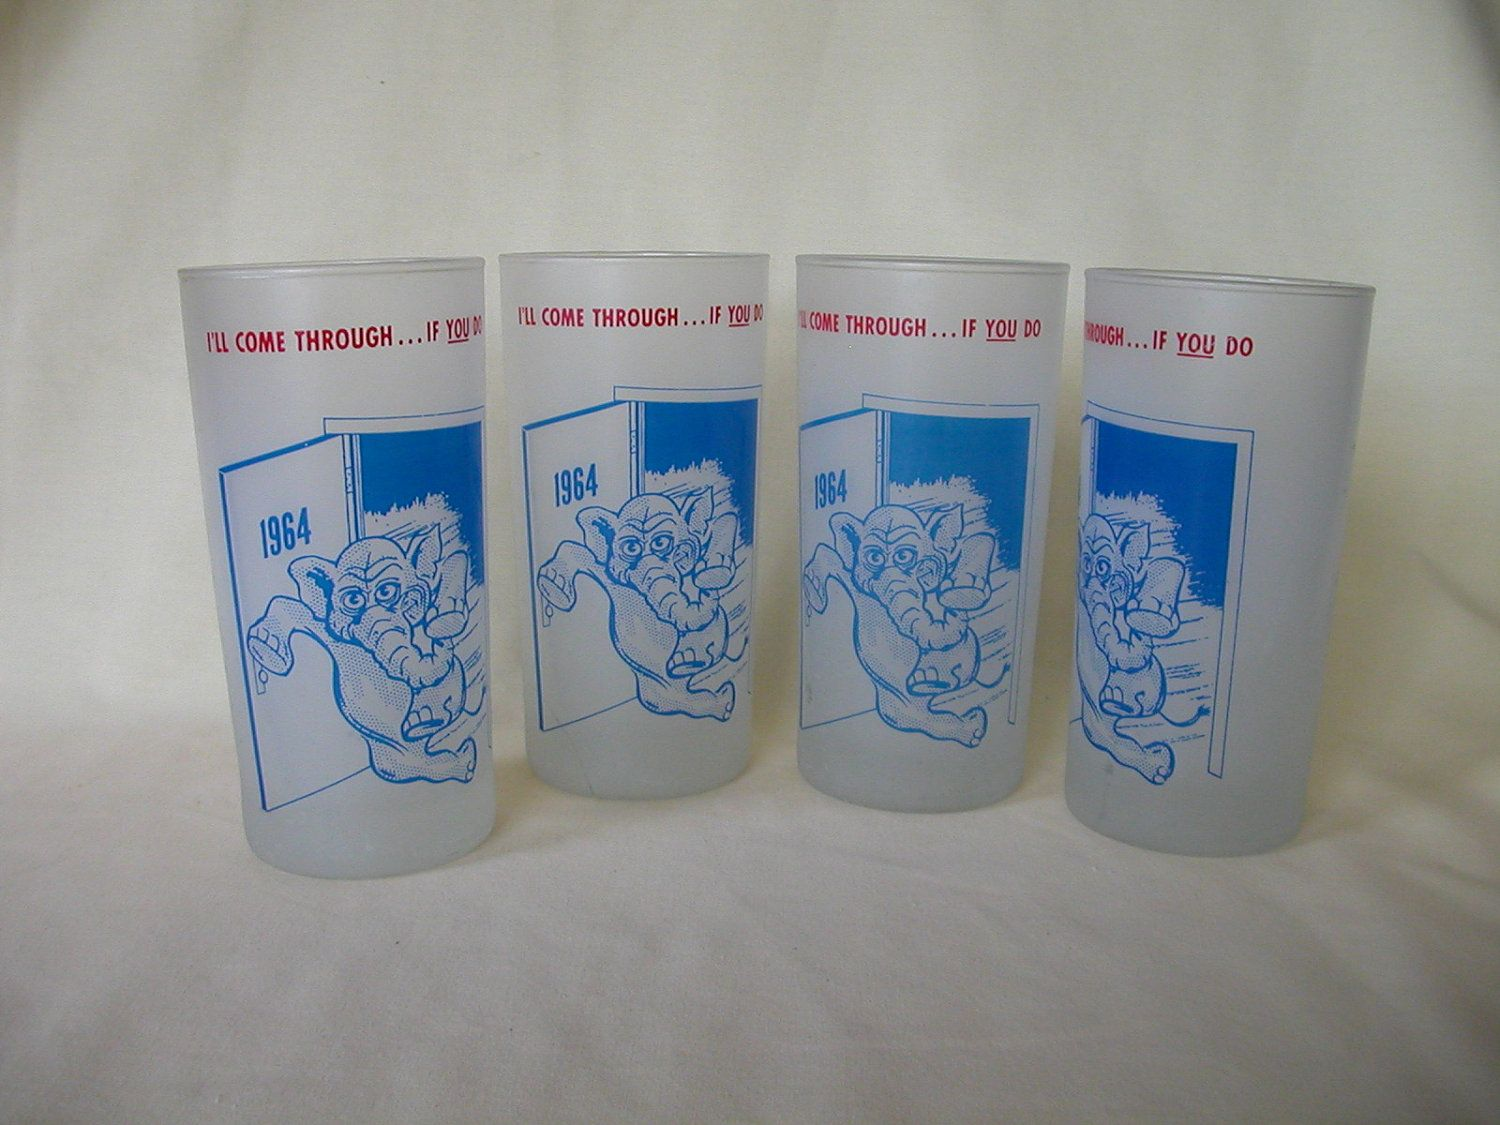 1964 Republican Elephant - Set of 4 Drinking Glasses.